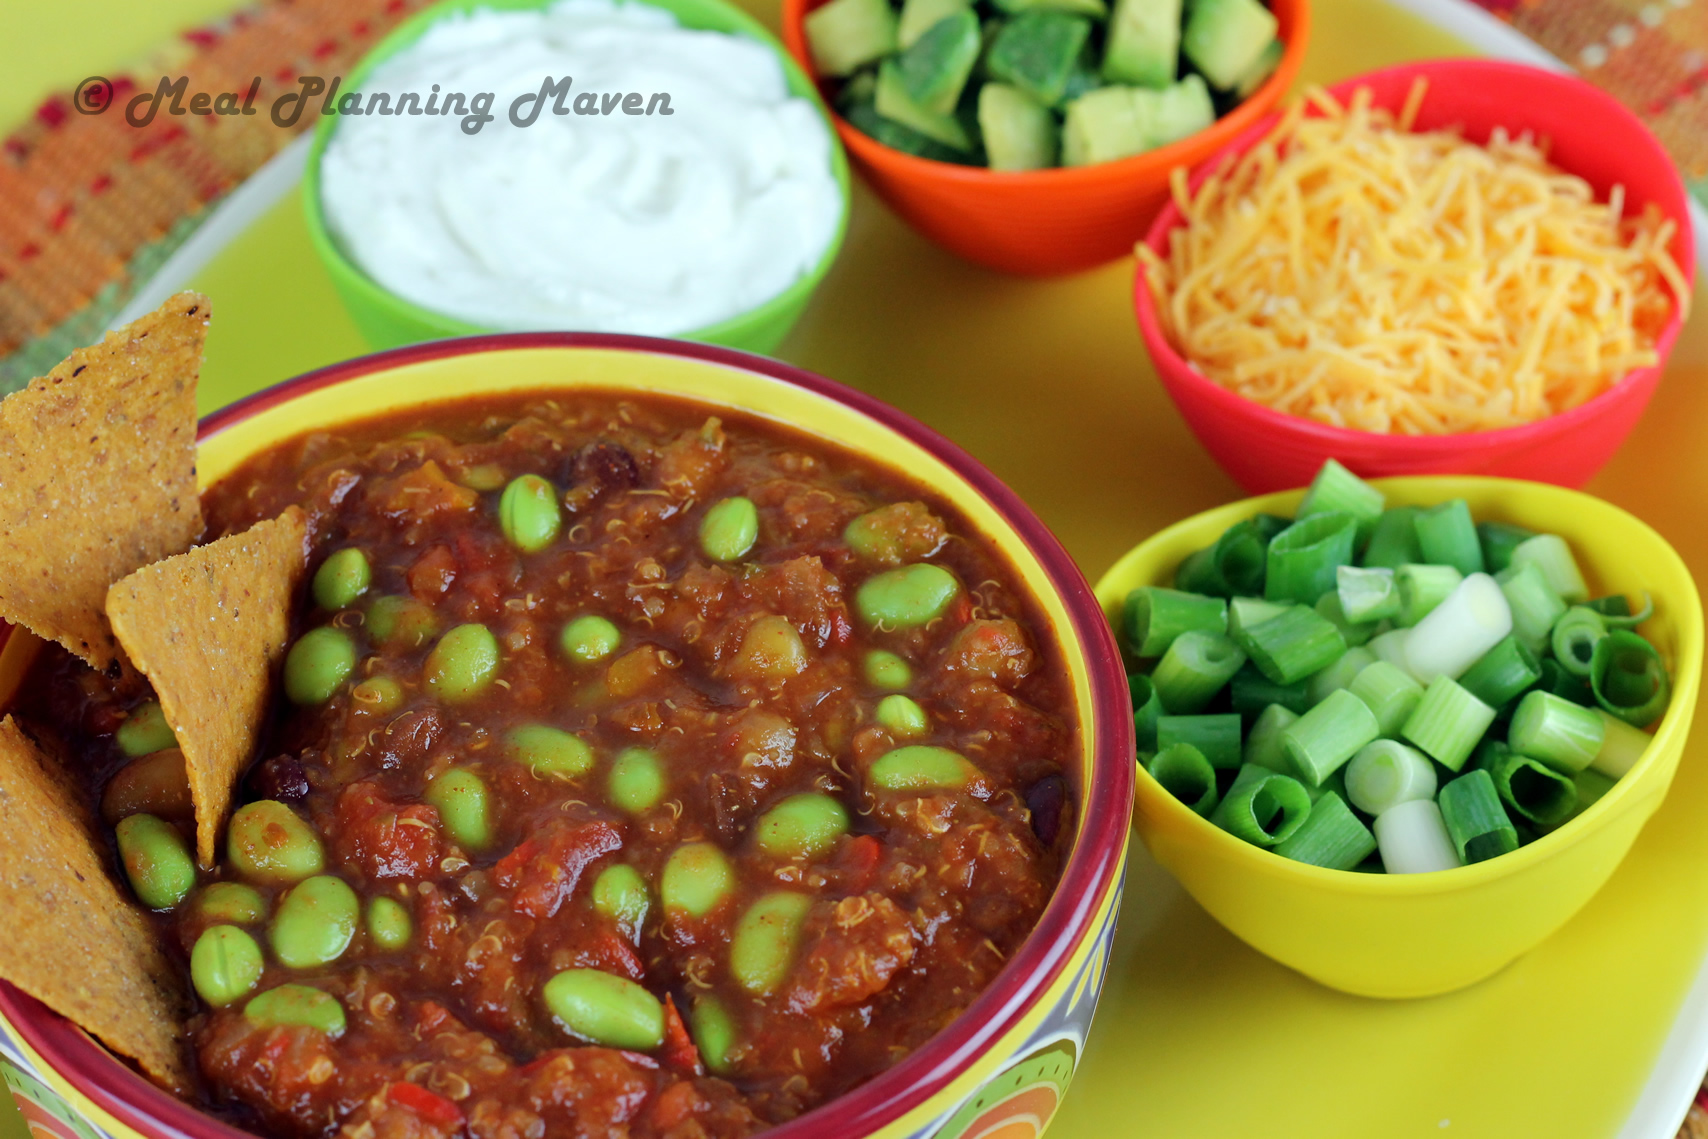 Crockpot Mexican Jumping Bean Chili